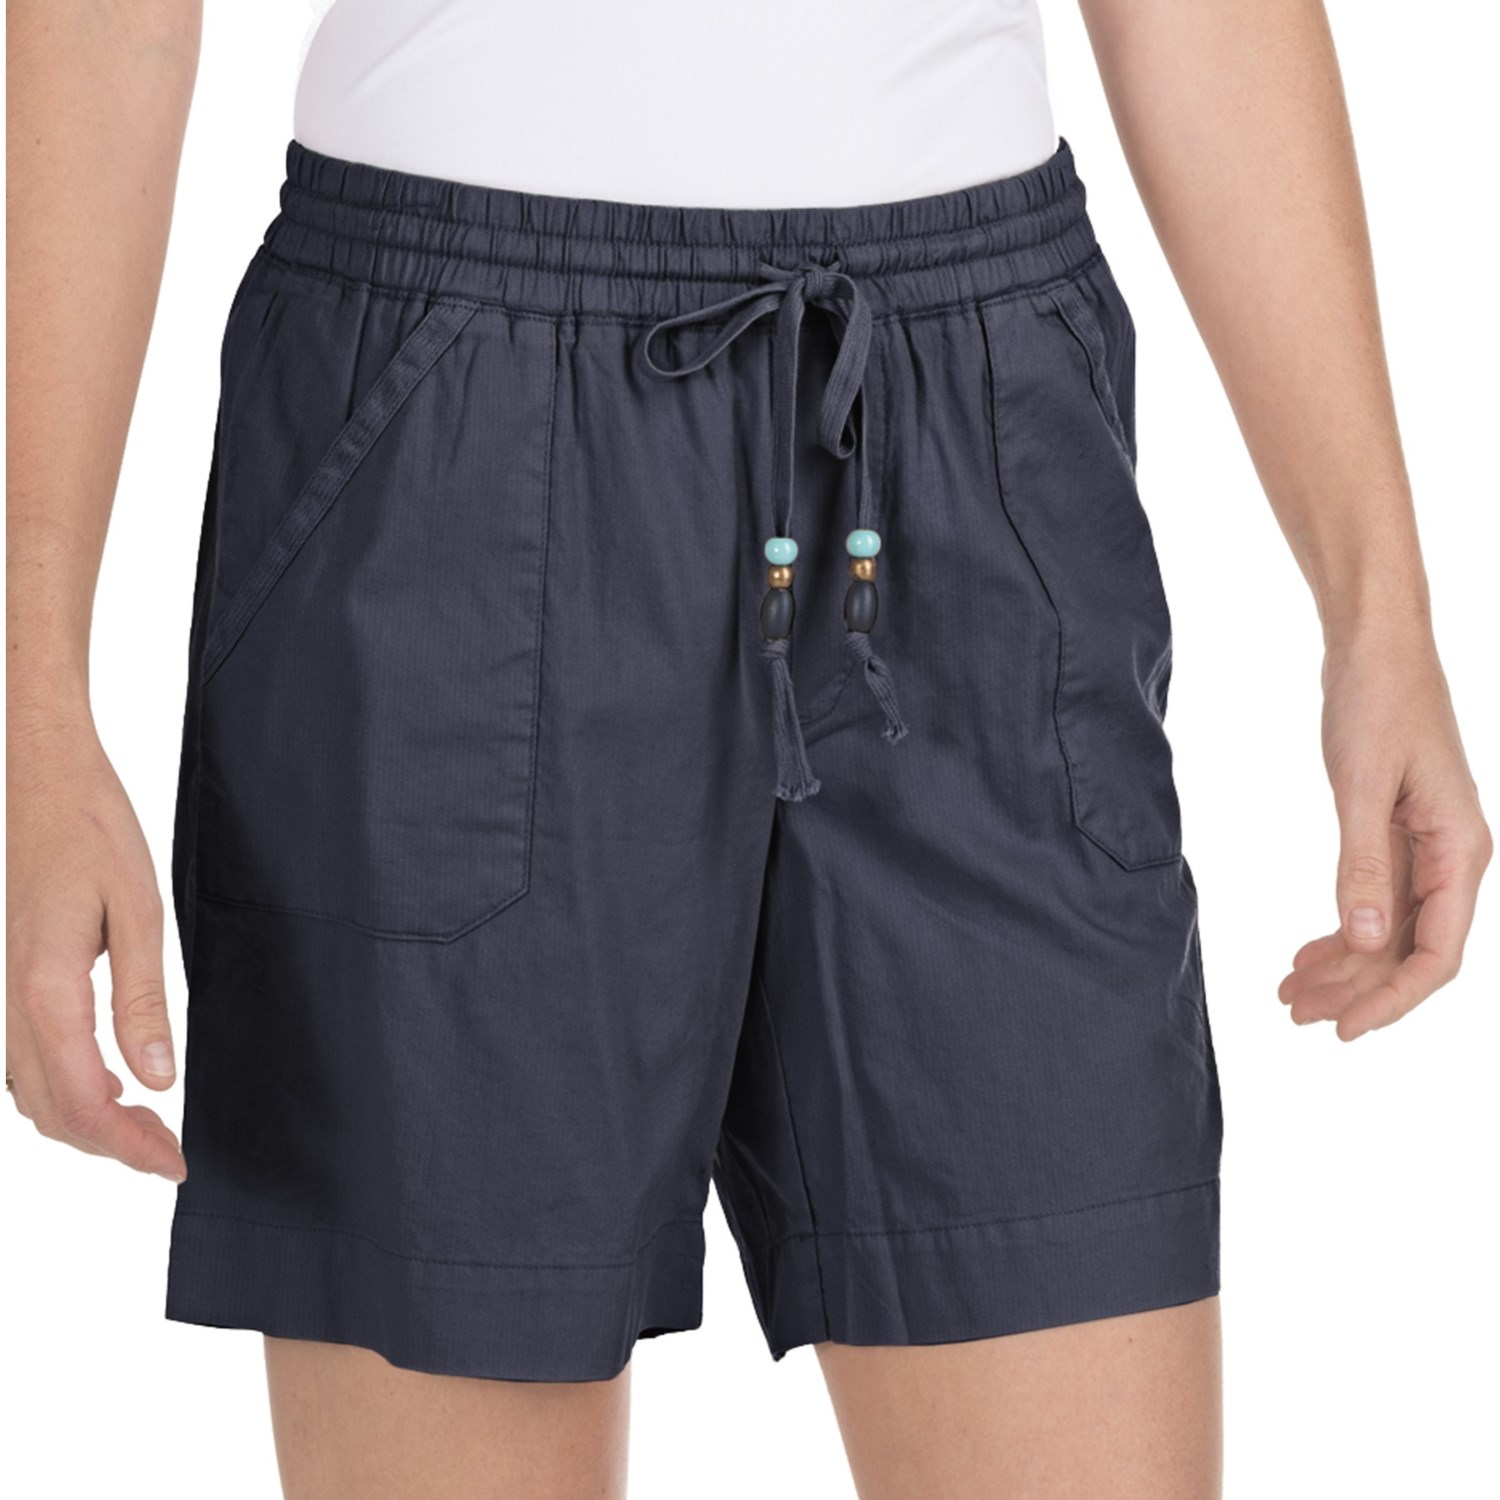 shriftxasb - cotton drawstring shorts for men